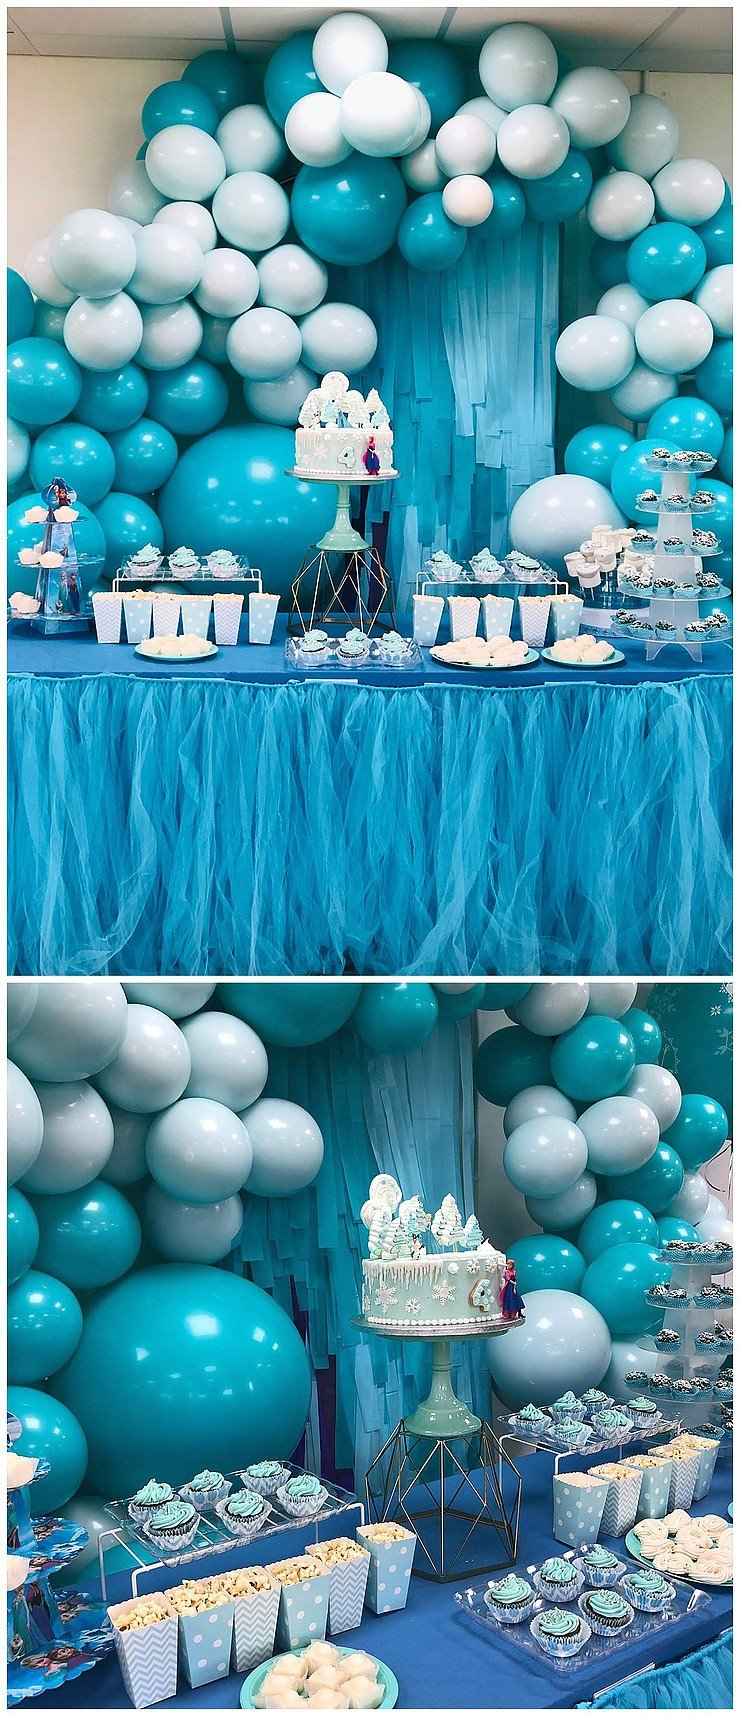 A Frozen Birthday Party From Balloonista 001.jpg